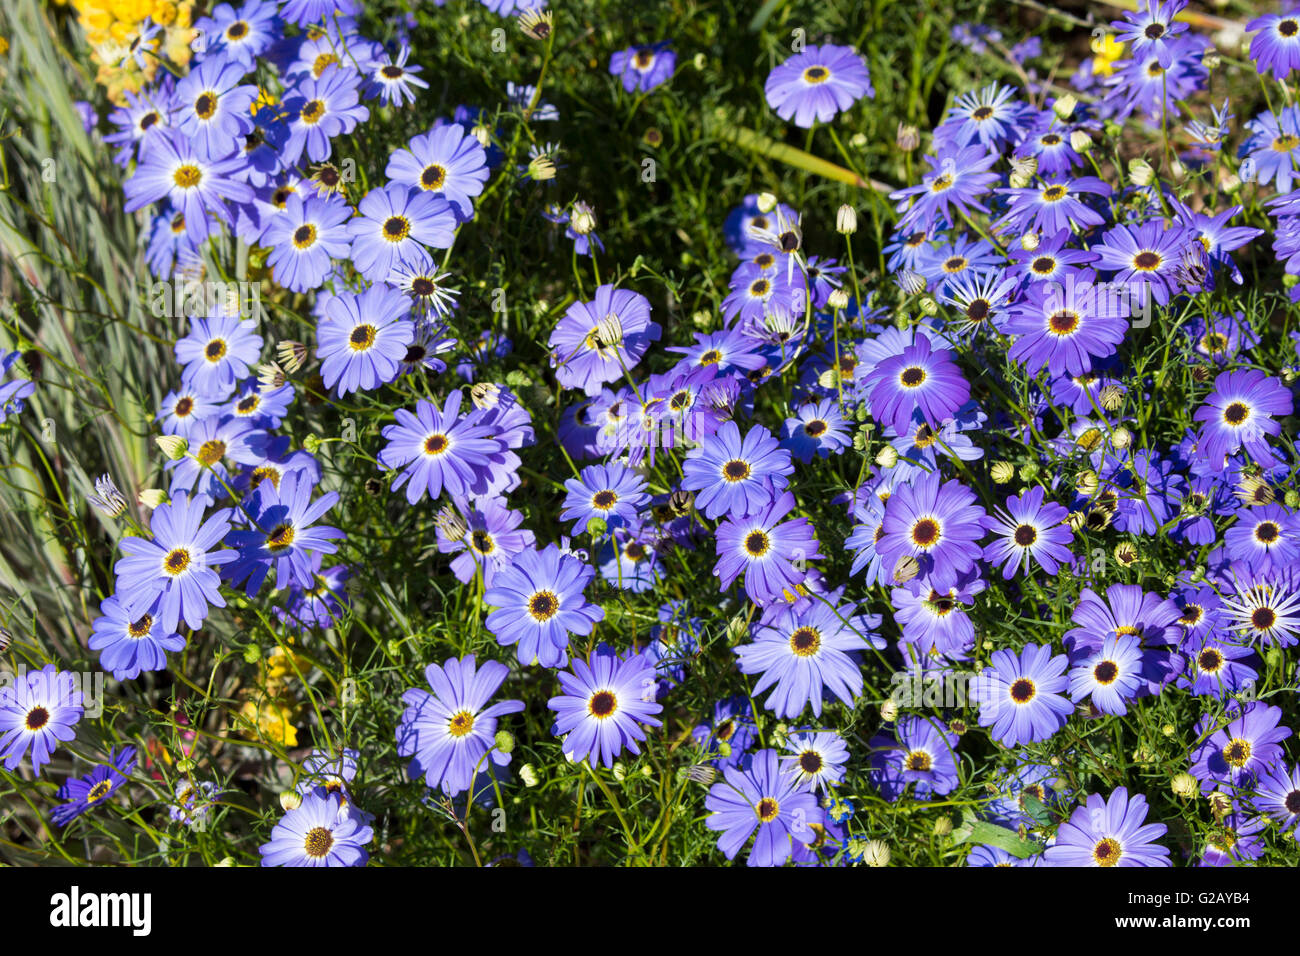 Blue Flowers Australia Flowers Perth Stock Photos And Flowers Perth Stock Images